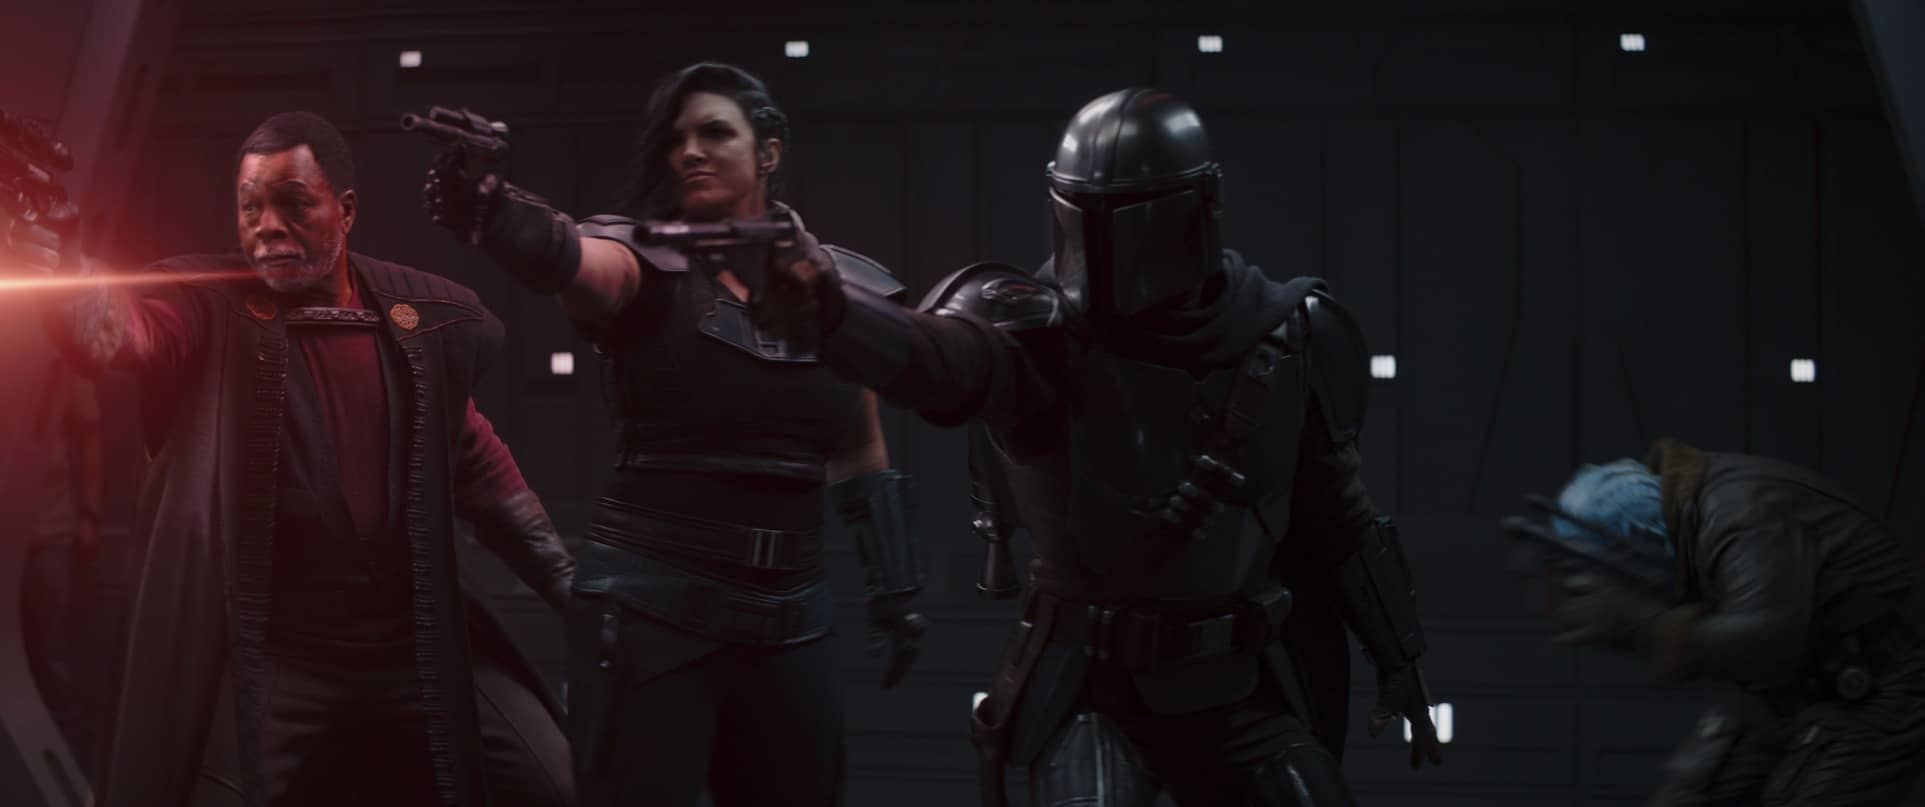 (L-R): Greef Karga (Carl Weathers), Cara Dune (Gina Carano), the Mandalorian (Pedro Pascal) and Mythrol (Horatio Sanz) in Lucasfilm's THE MANDALORIAN, season two, exclusively on Disney+. © 2020 Lucasfilm Ltd. & ™. All Rights Reserved.